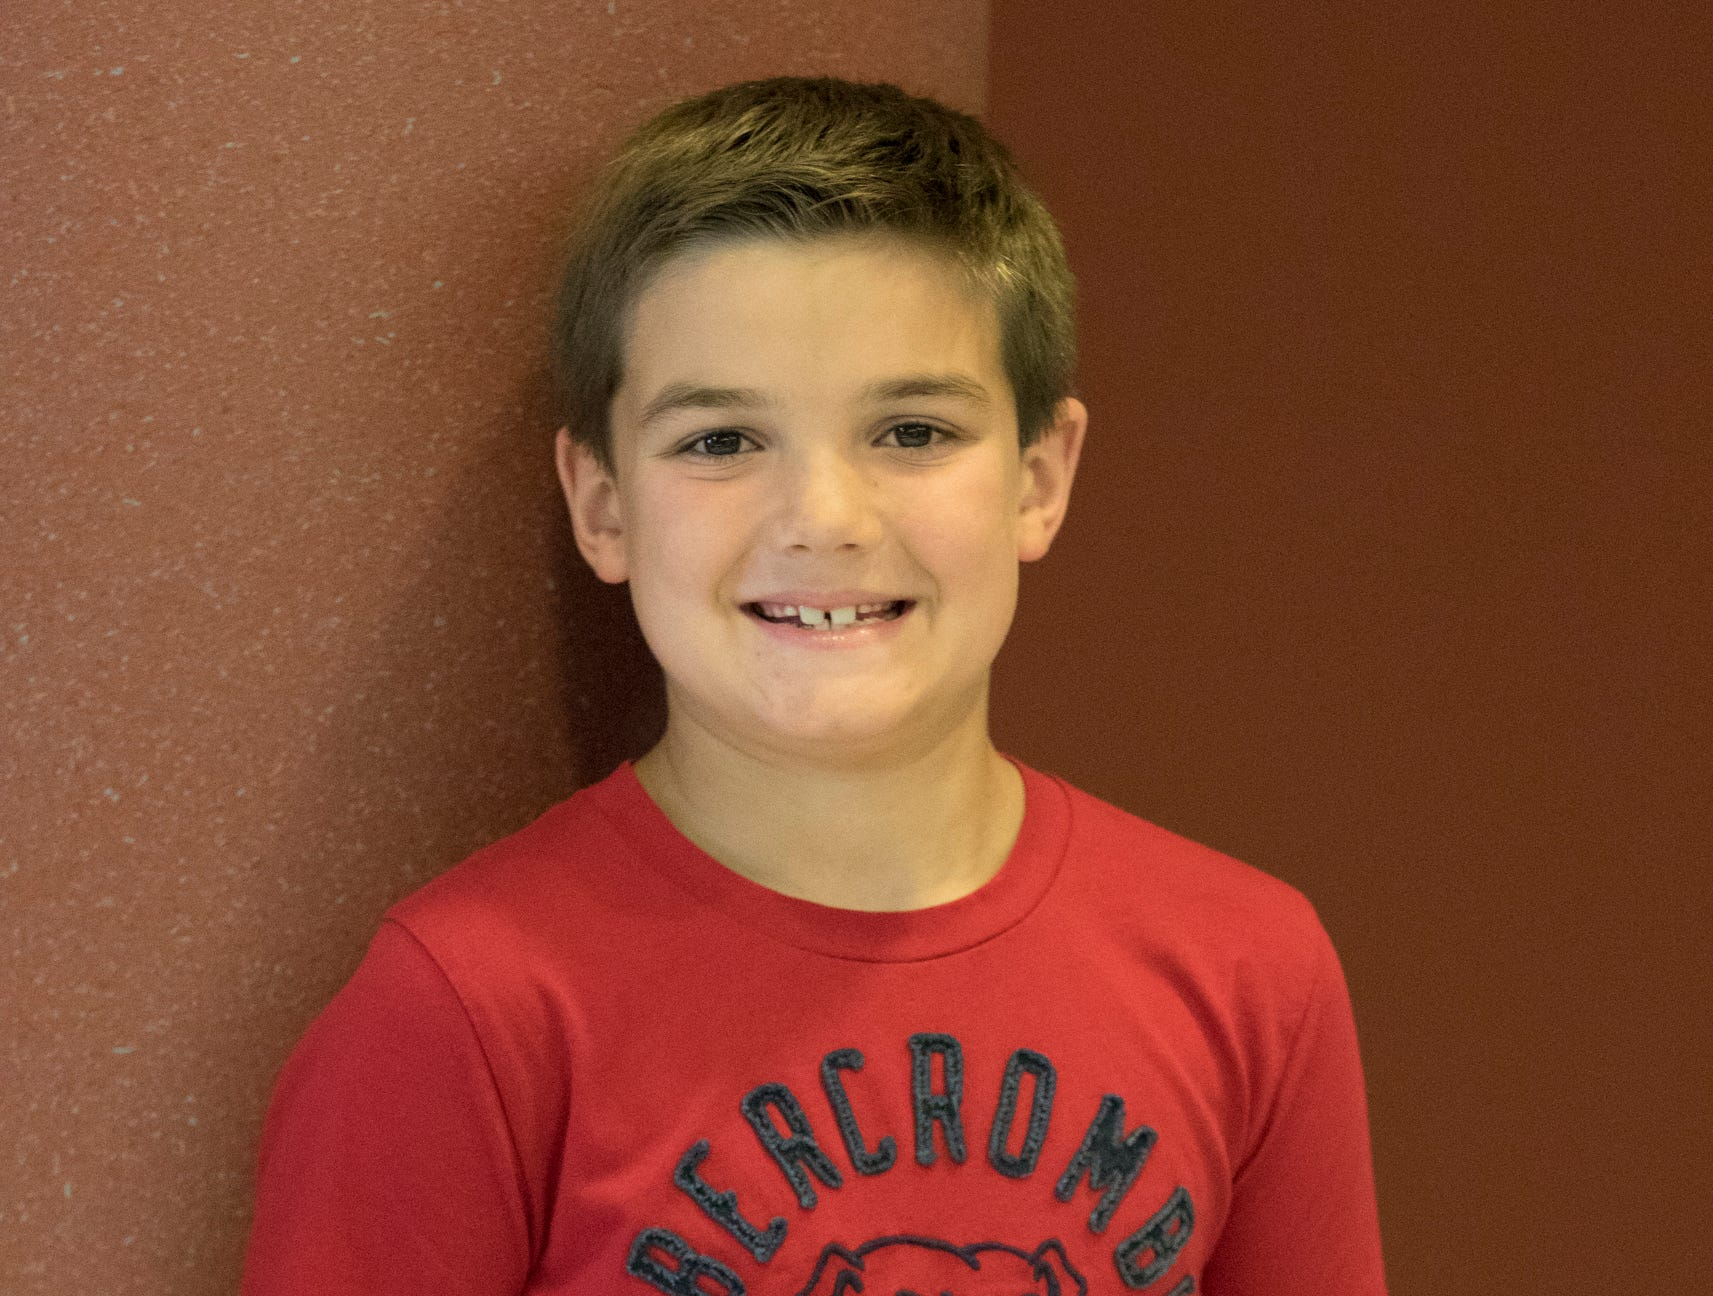 Caleb Skaggs, 8, Clover Bees. Project: Arc and Sparks